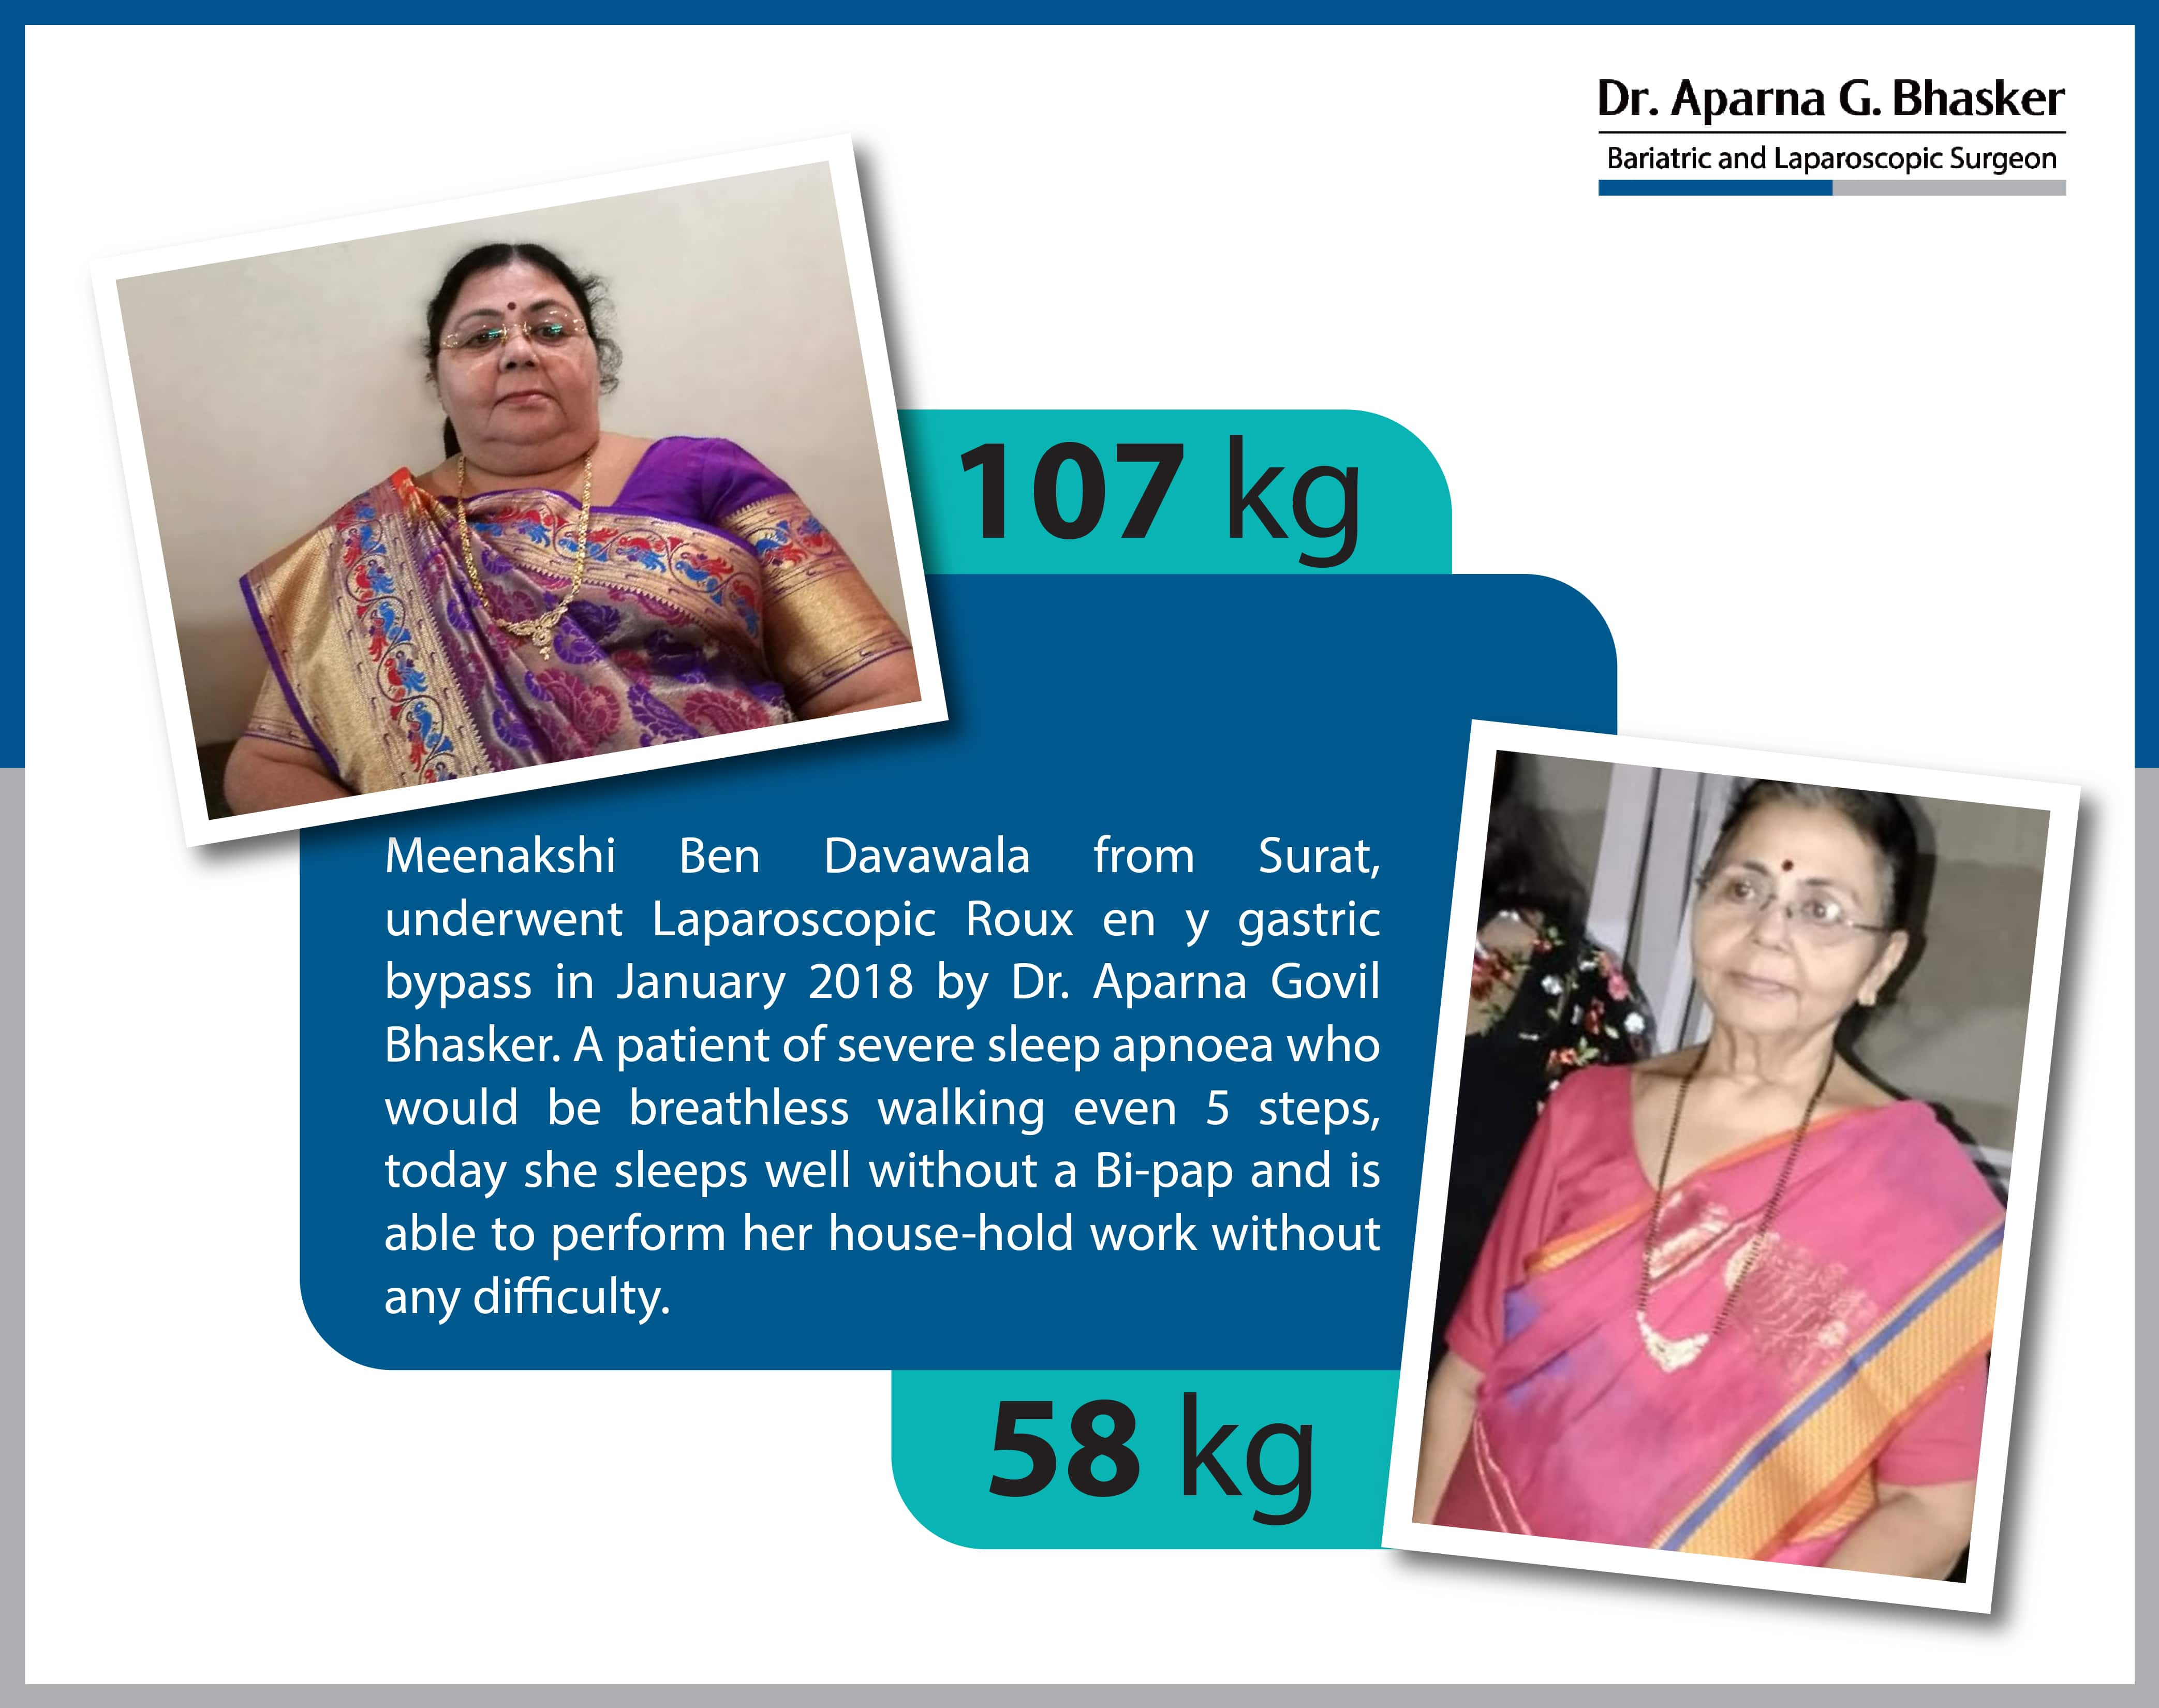 best bariatric surgery and weight loss surgery cost in mumbai india before after photos (4)